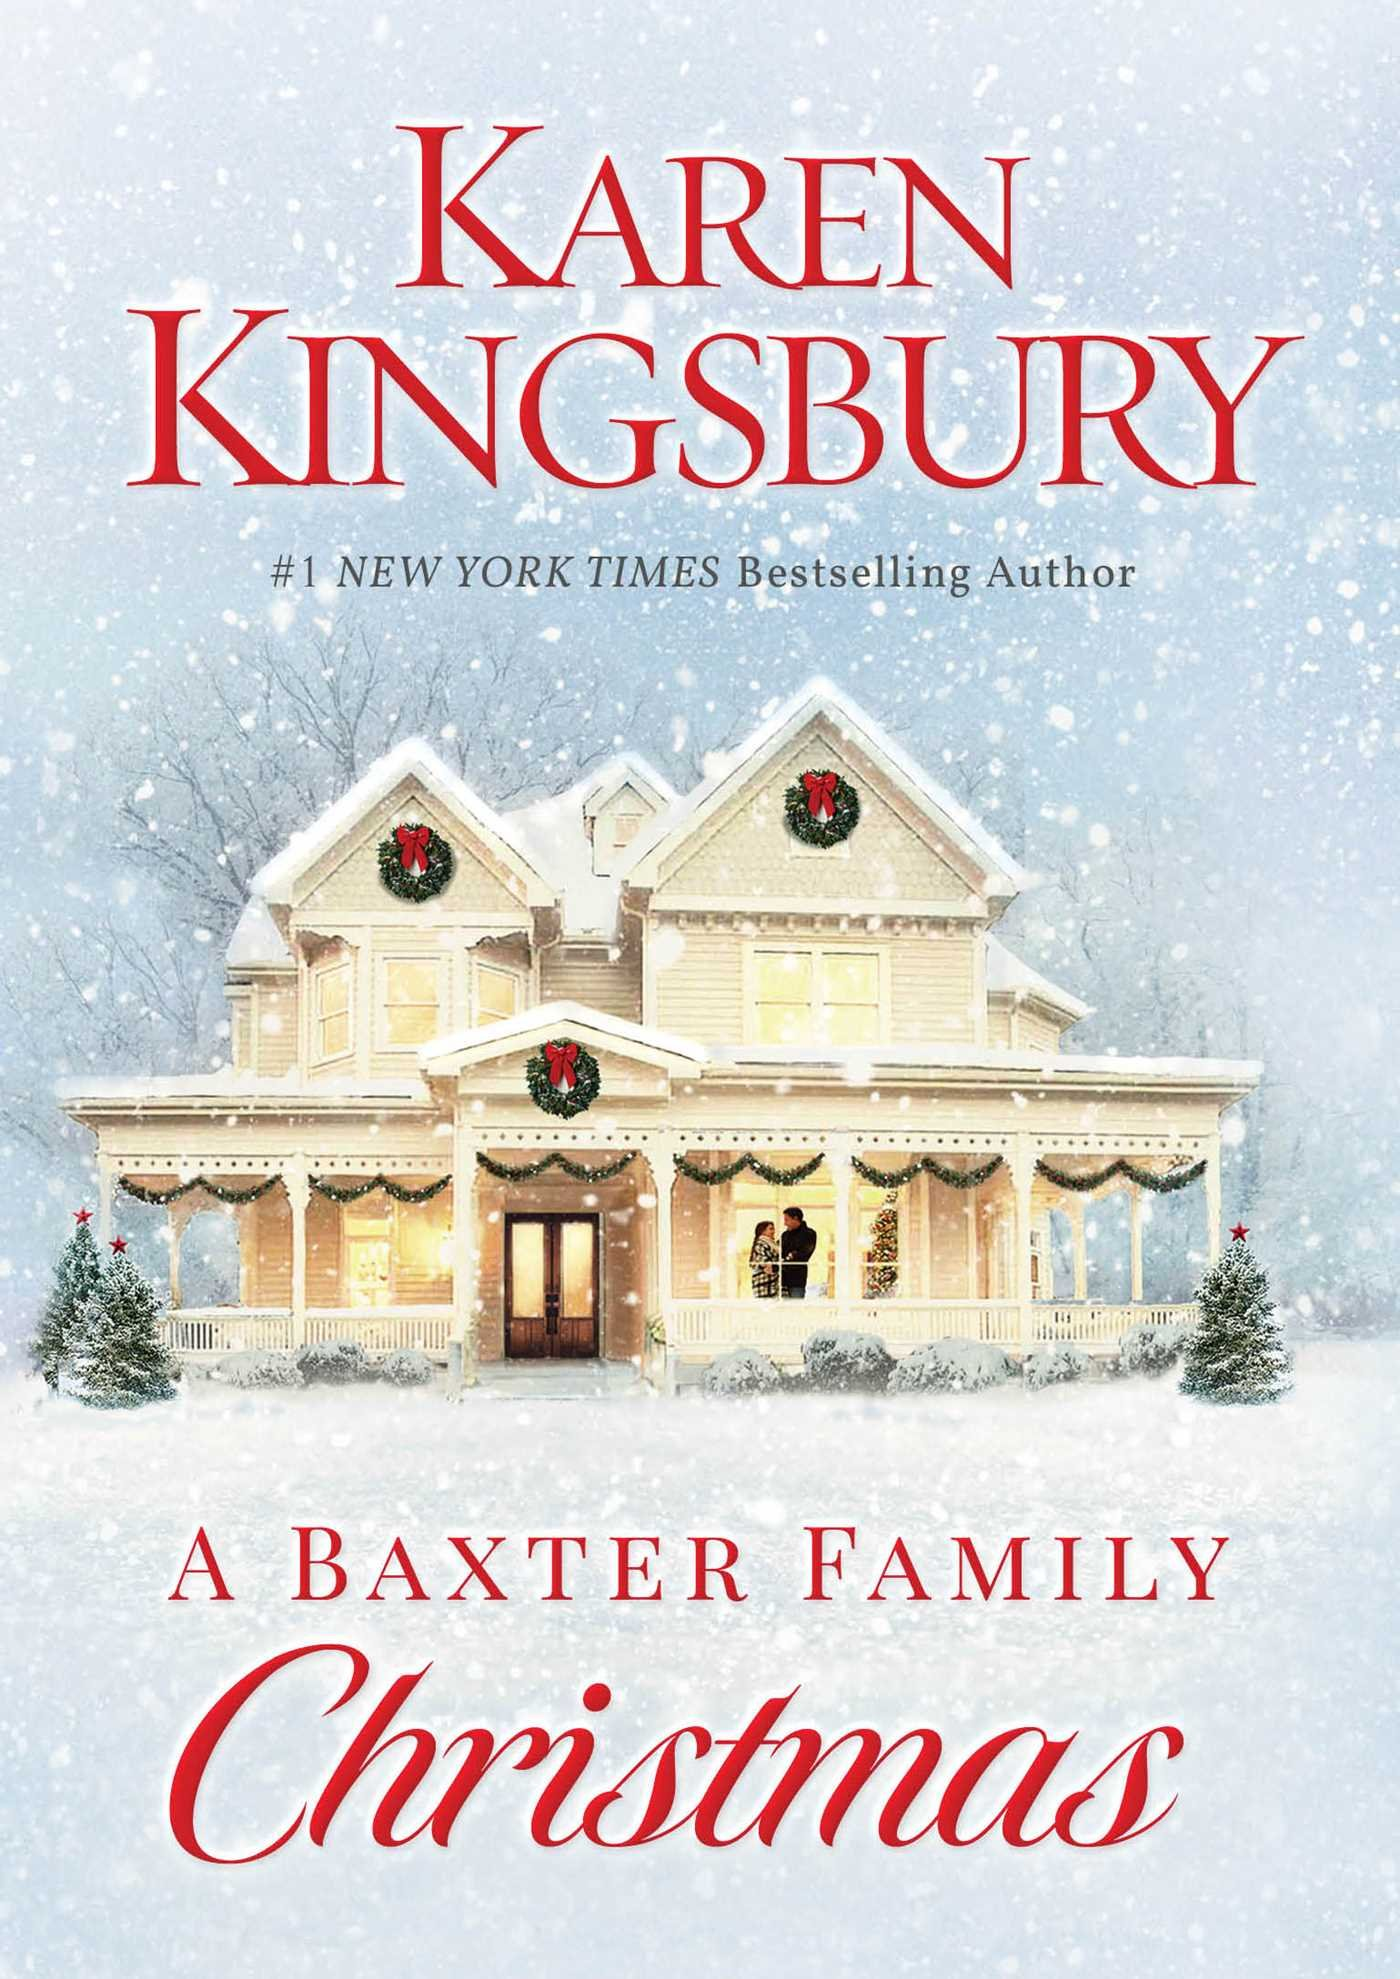 A Baxter Family Christmas: Karen Kingsbury: 9781451687569: Amazon ...